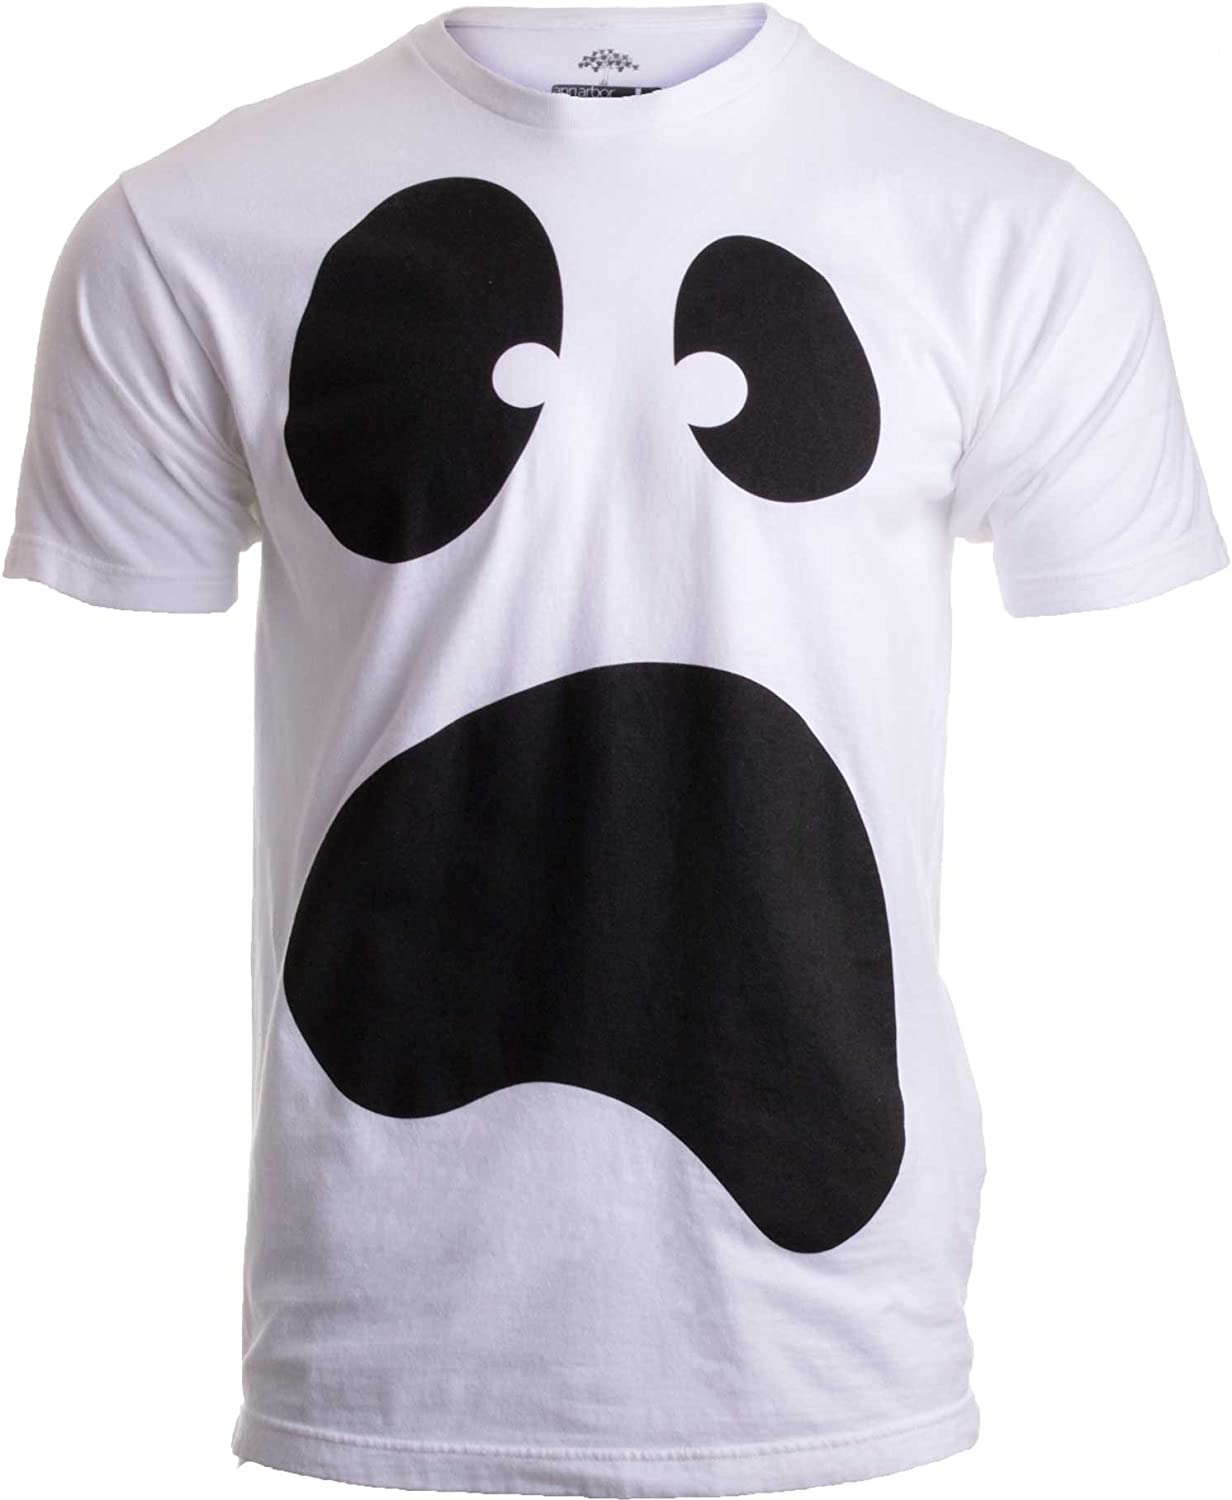 Silly Ghost Face | Spooky Halloween Ghoul Face Easy Costume Unisex T-Shirt